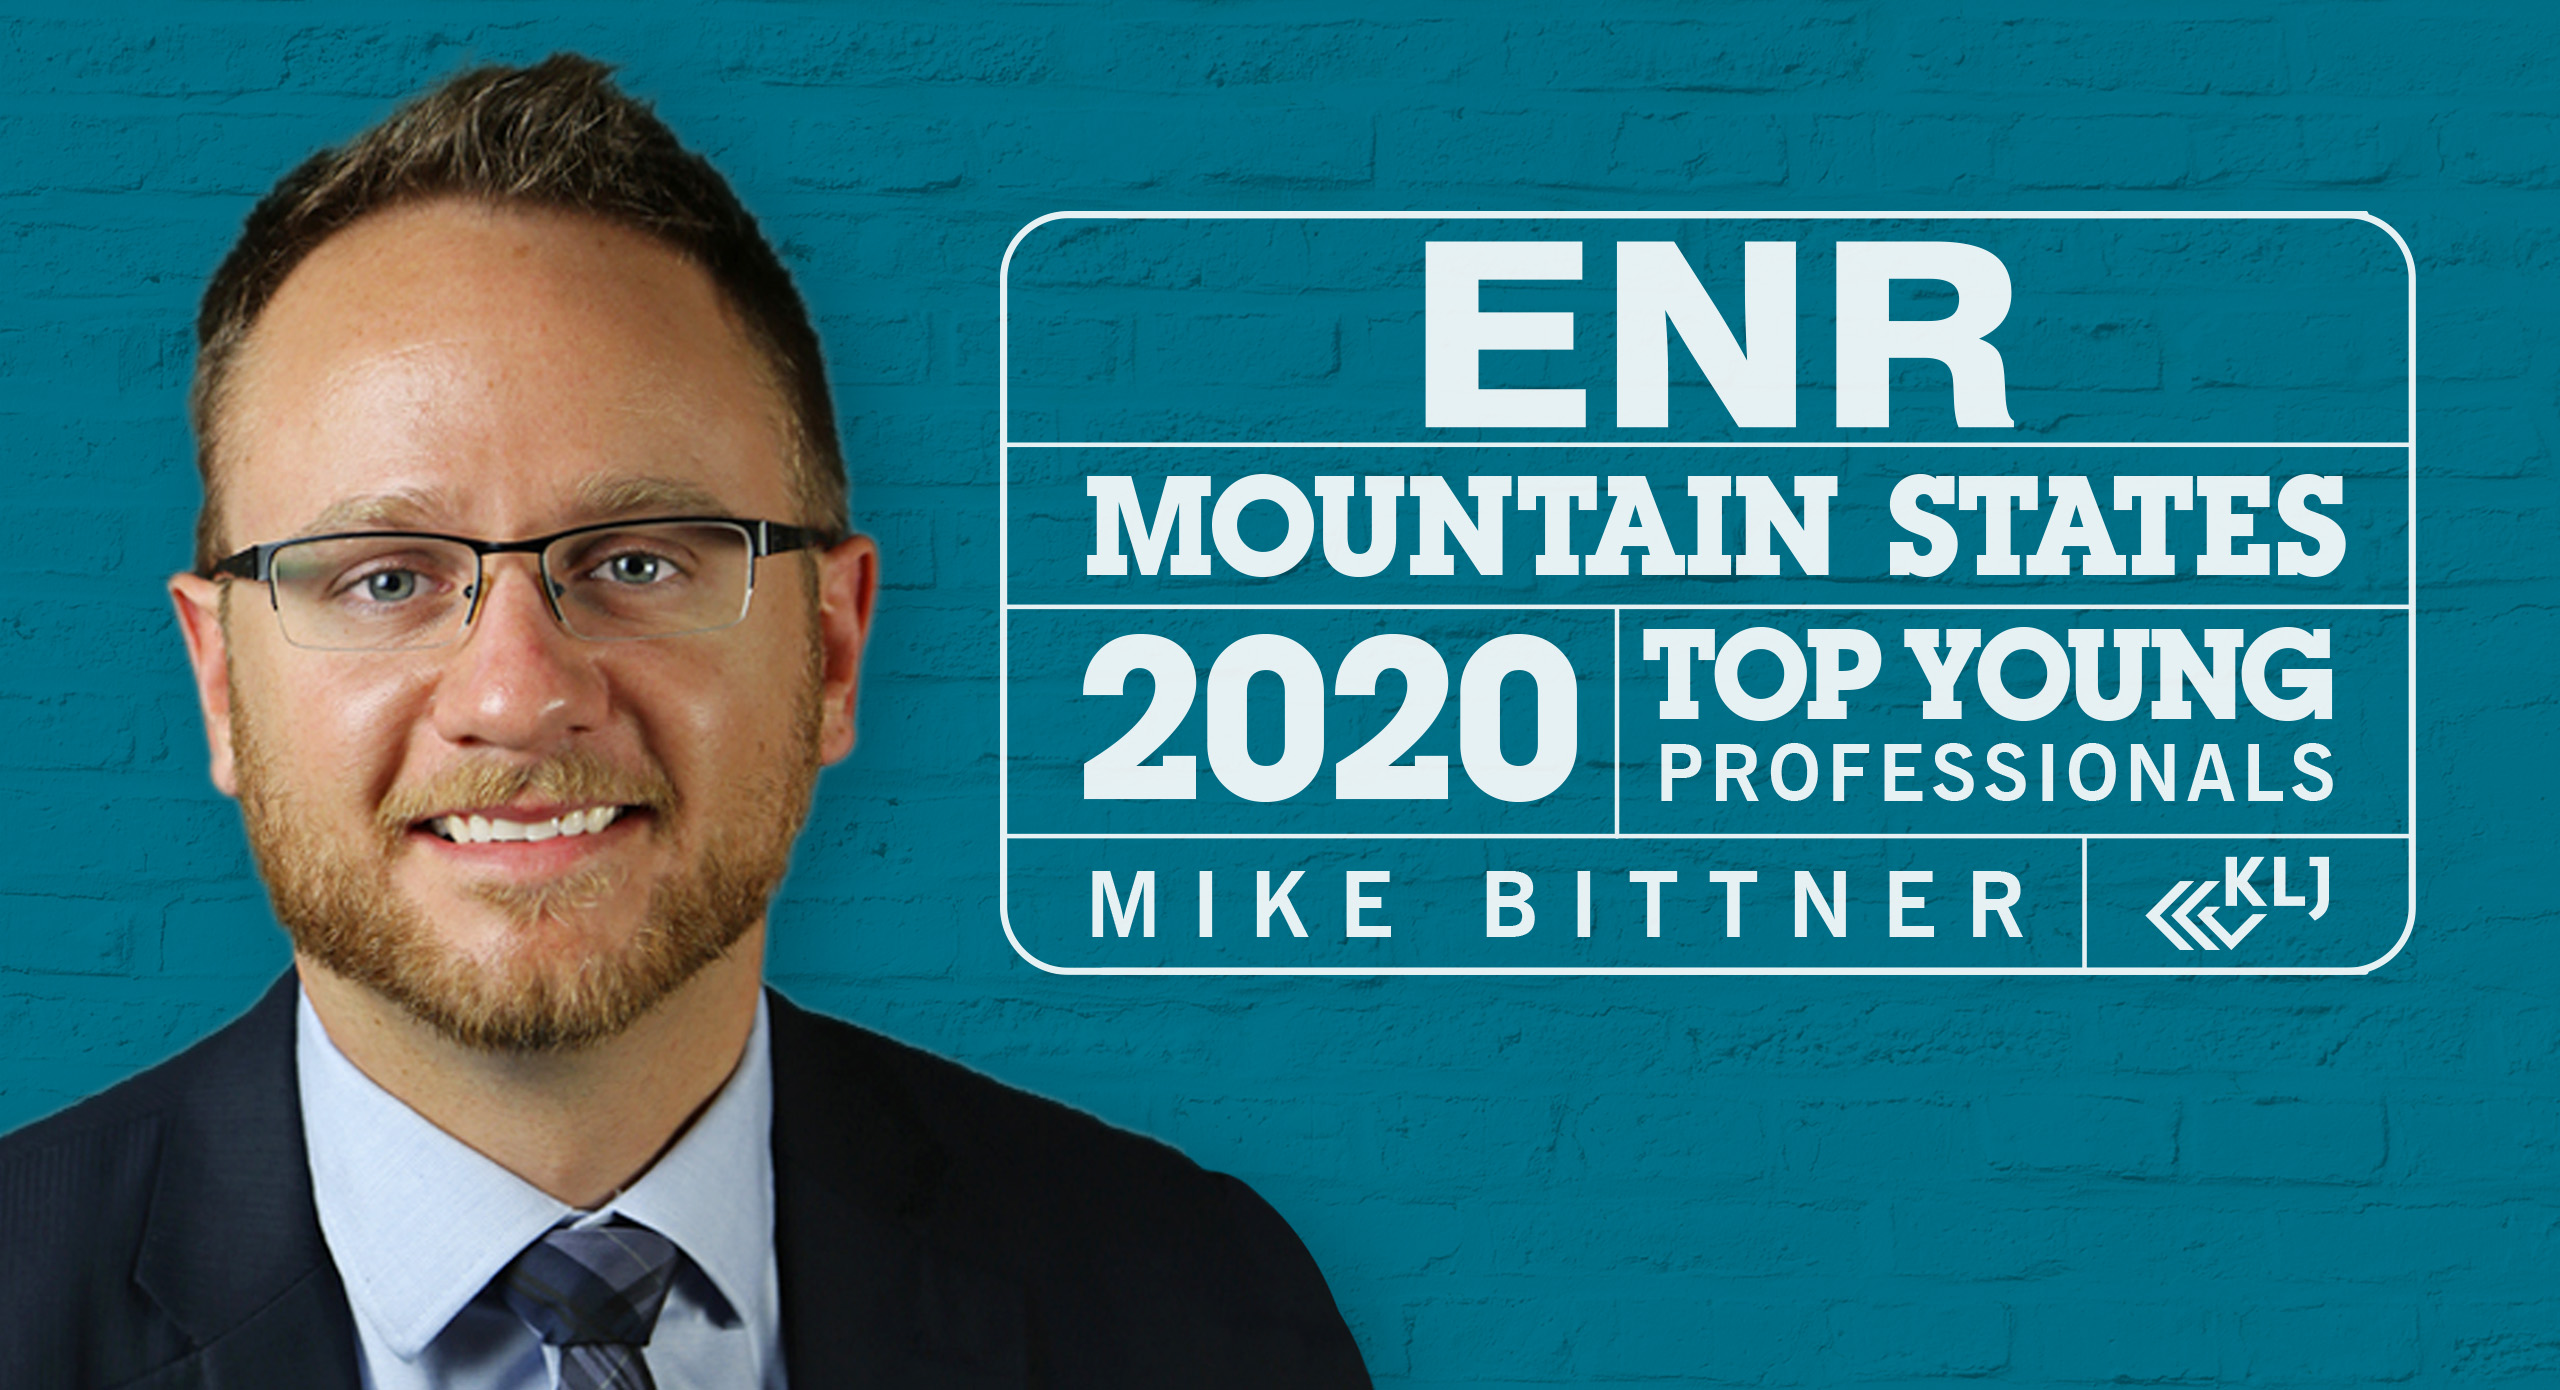 ENR Mountain States Names Bittner Among 2020 Top Young Professionals